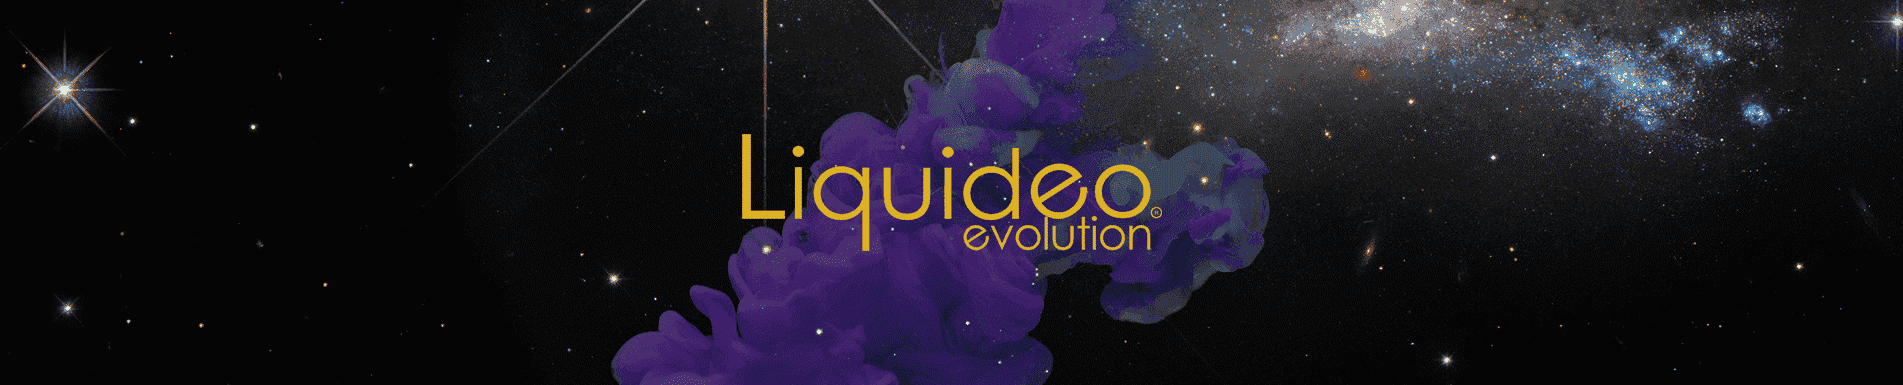 eliquide evolution liquideo